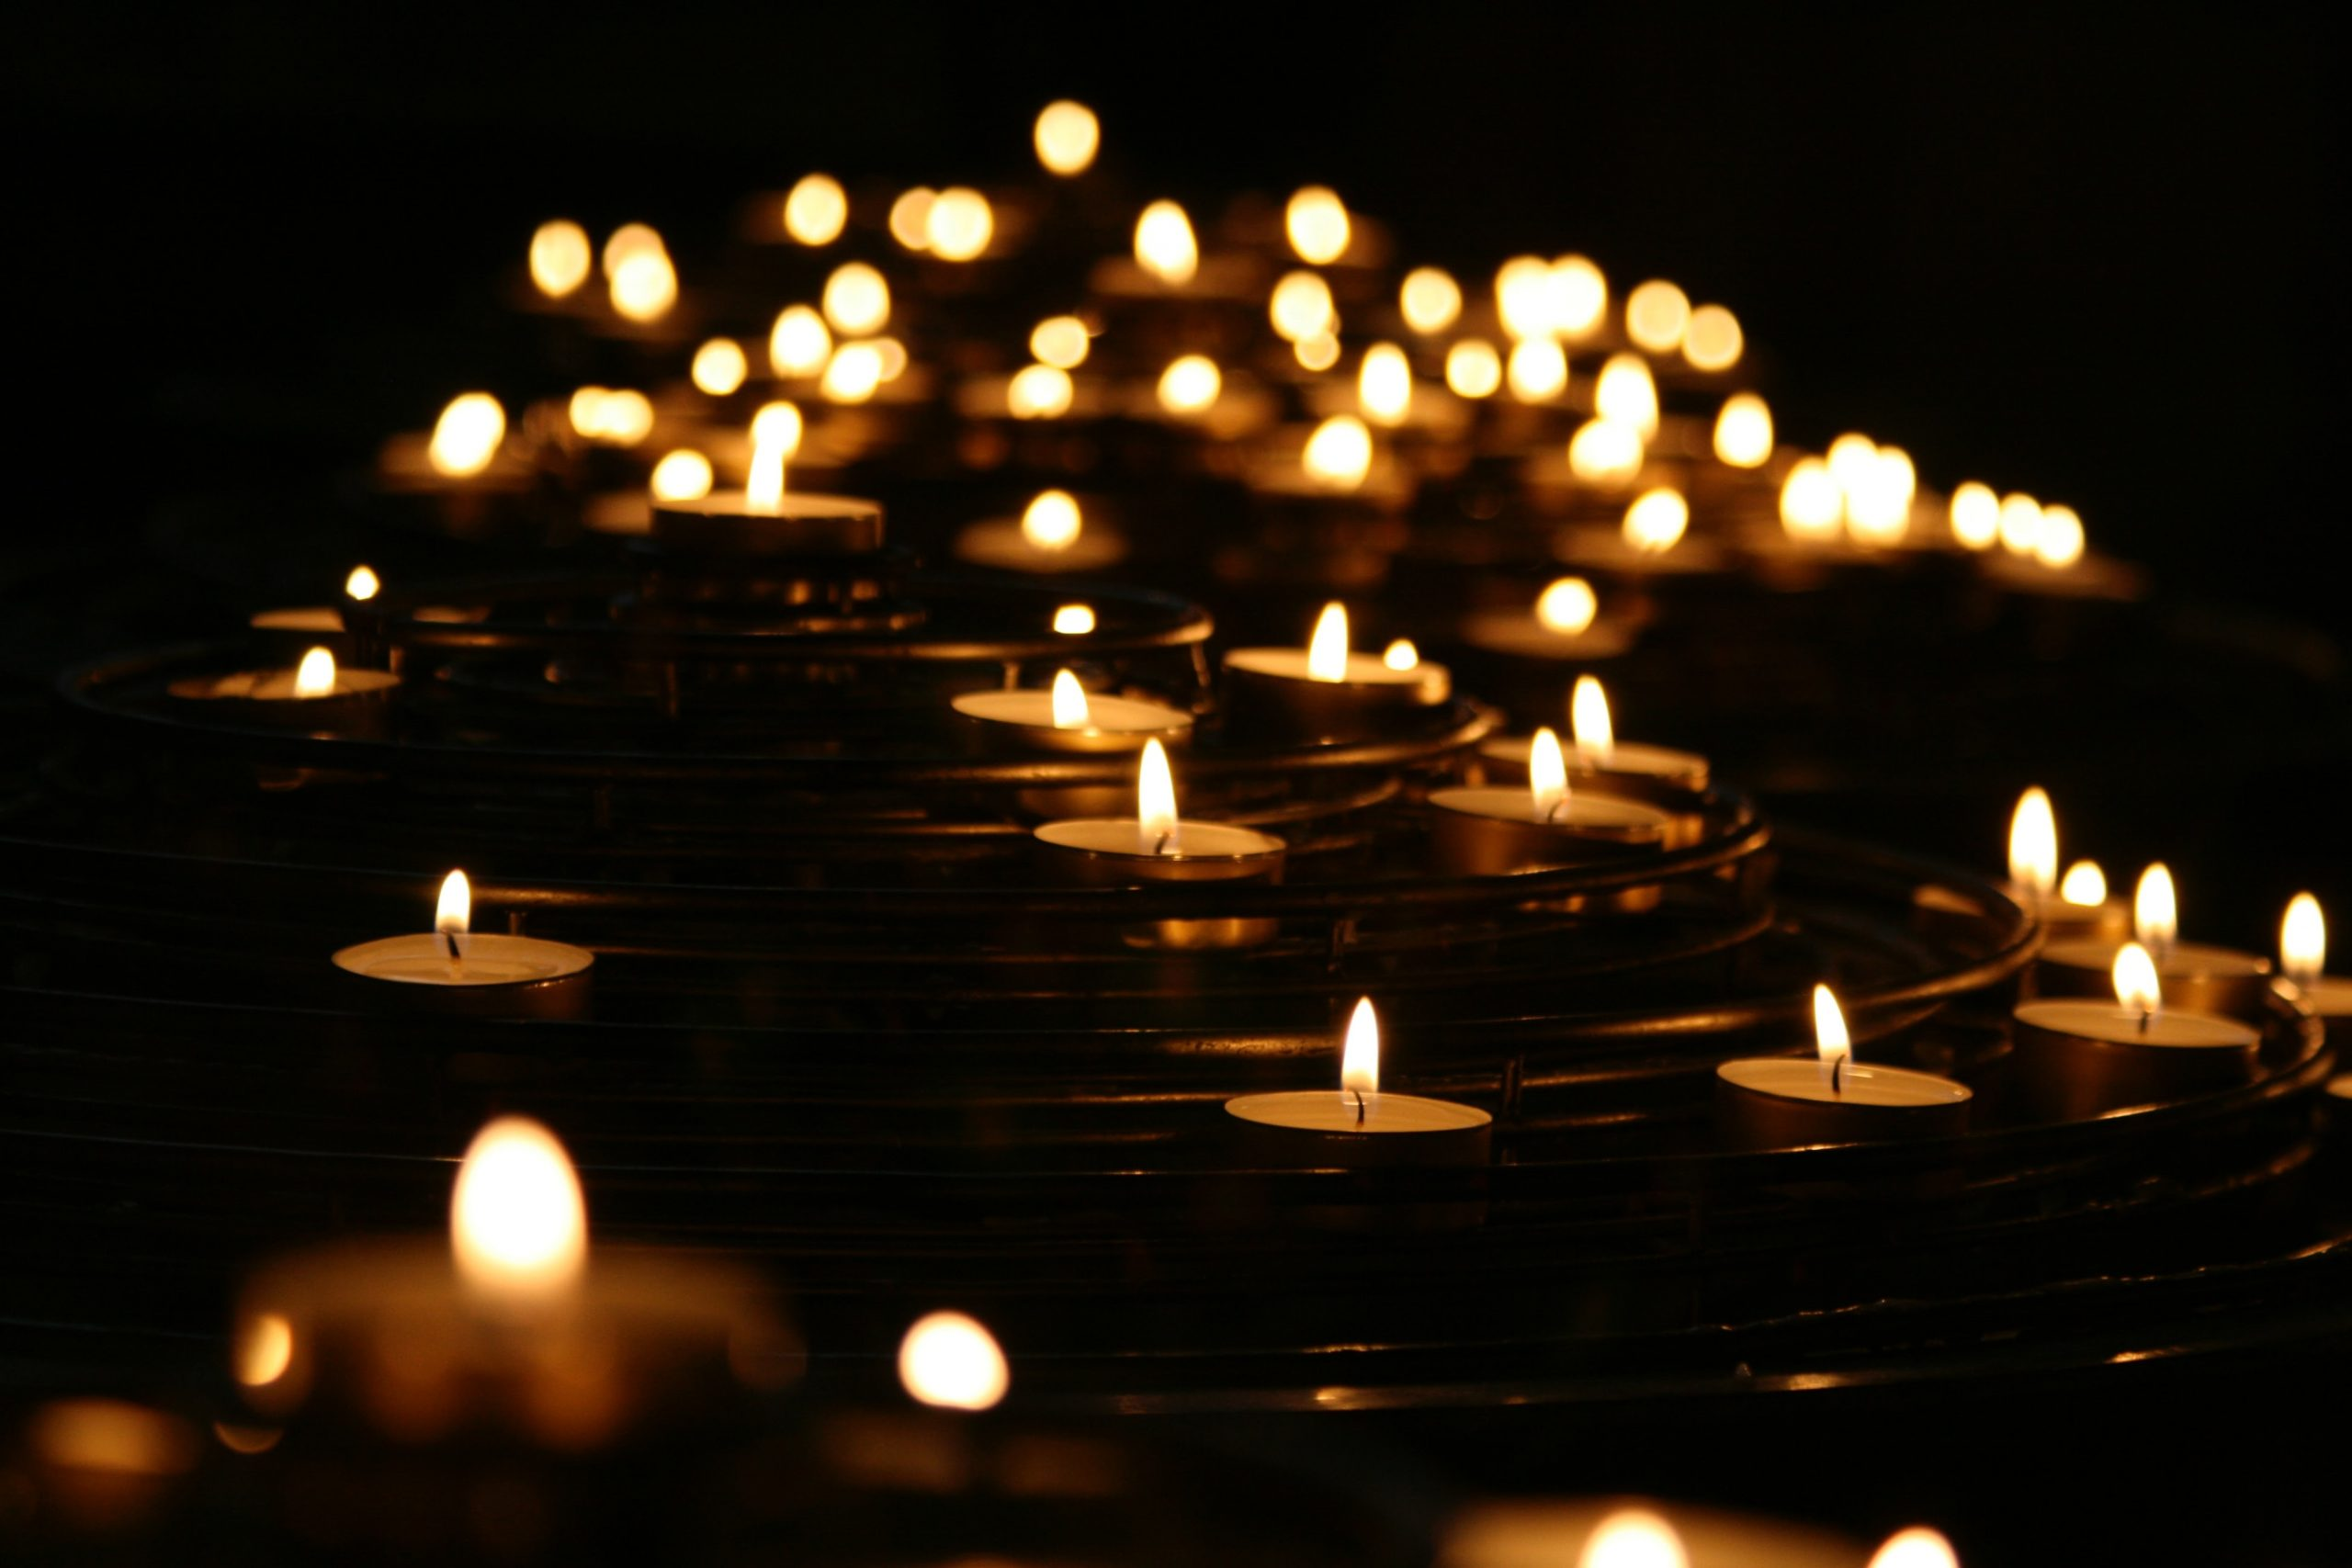 Light a candle for infancy and pregnancy loss October 15 with Dr. Aoife Earls ND